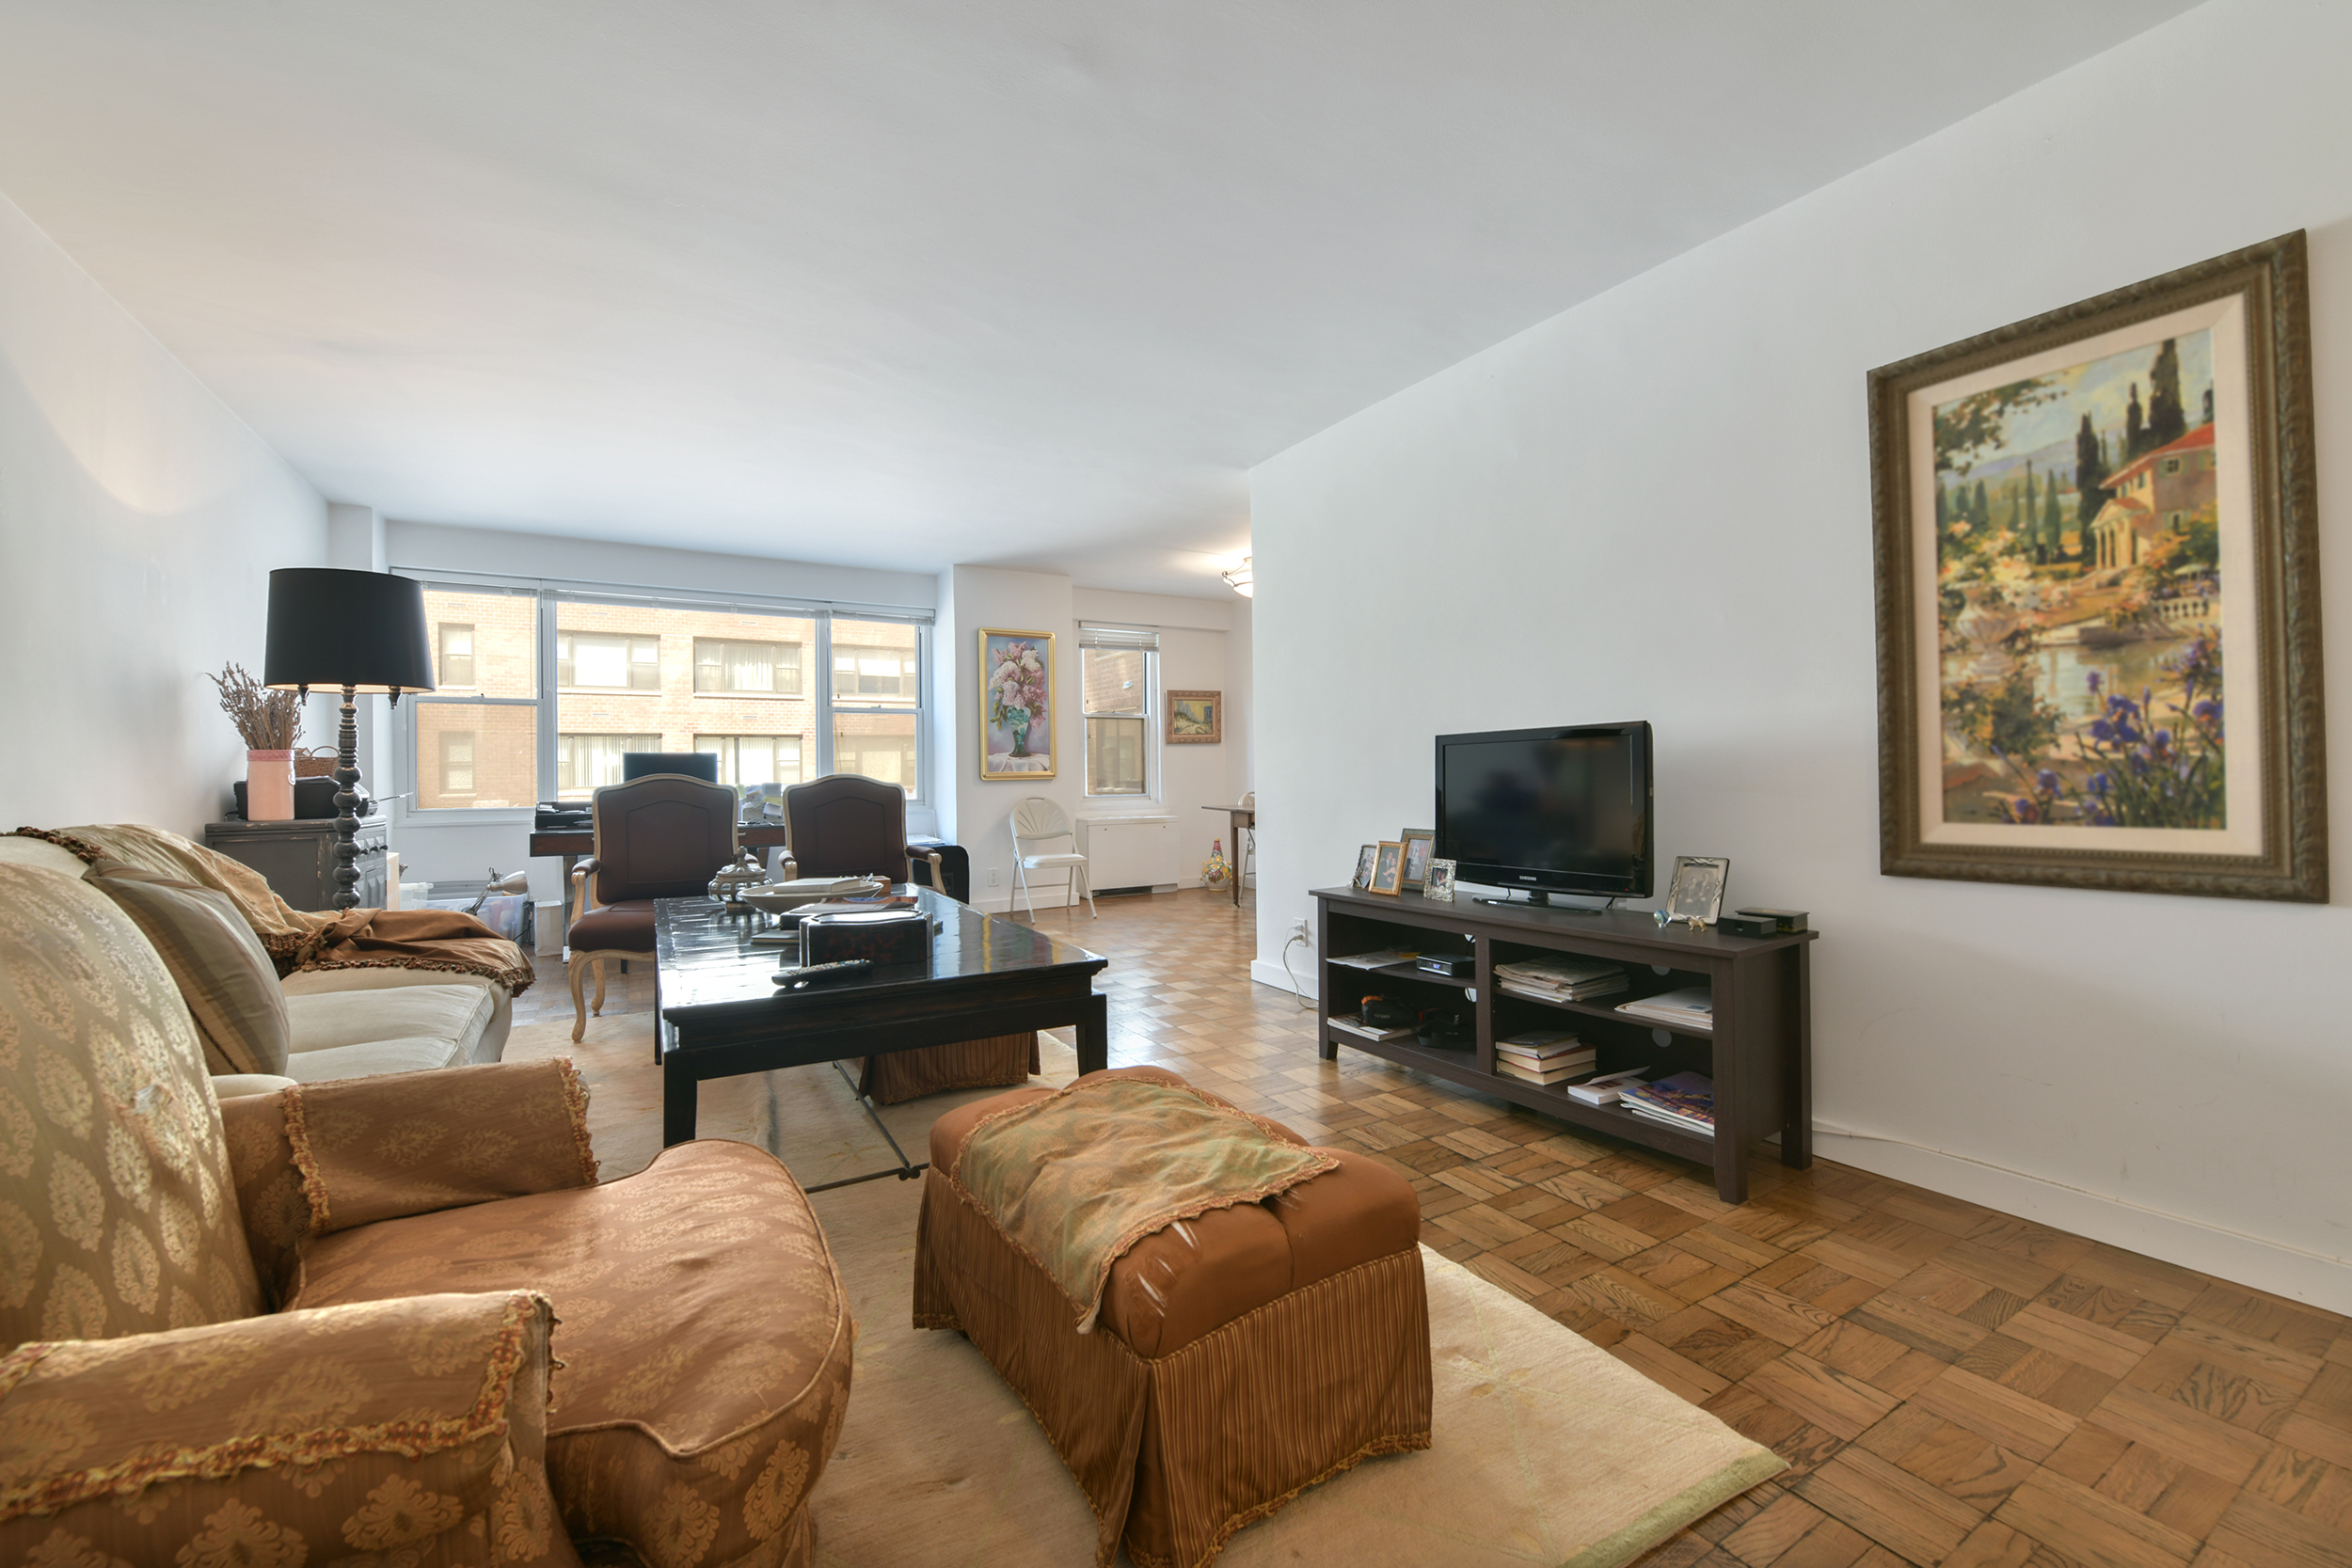 Apartment for sale at 340 East 64th Street, Apt 3P